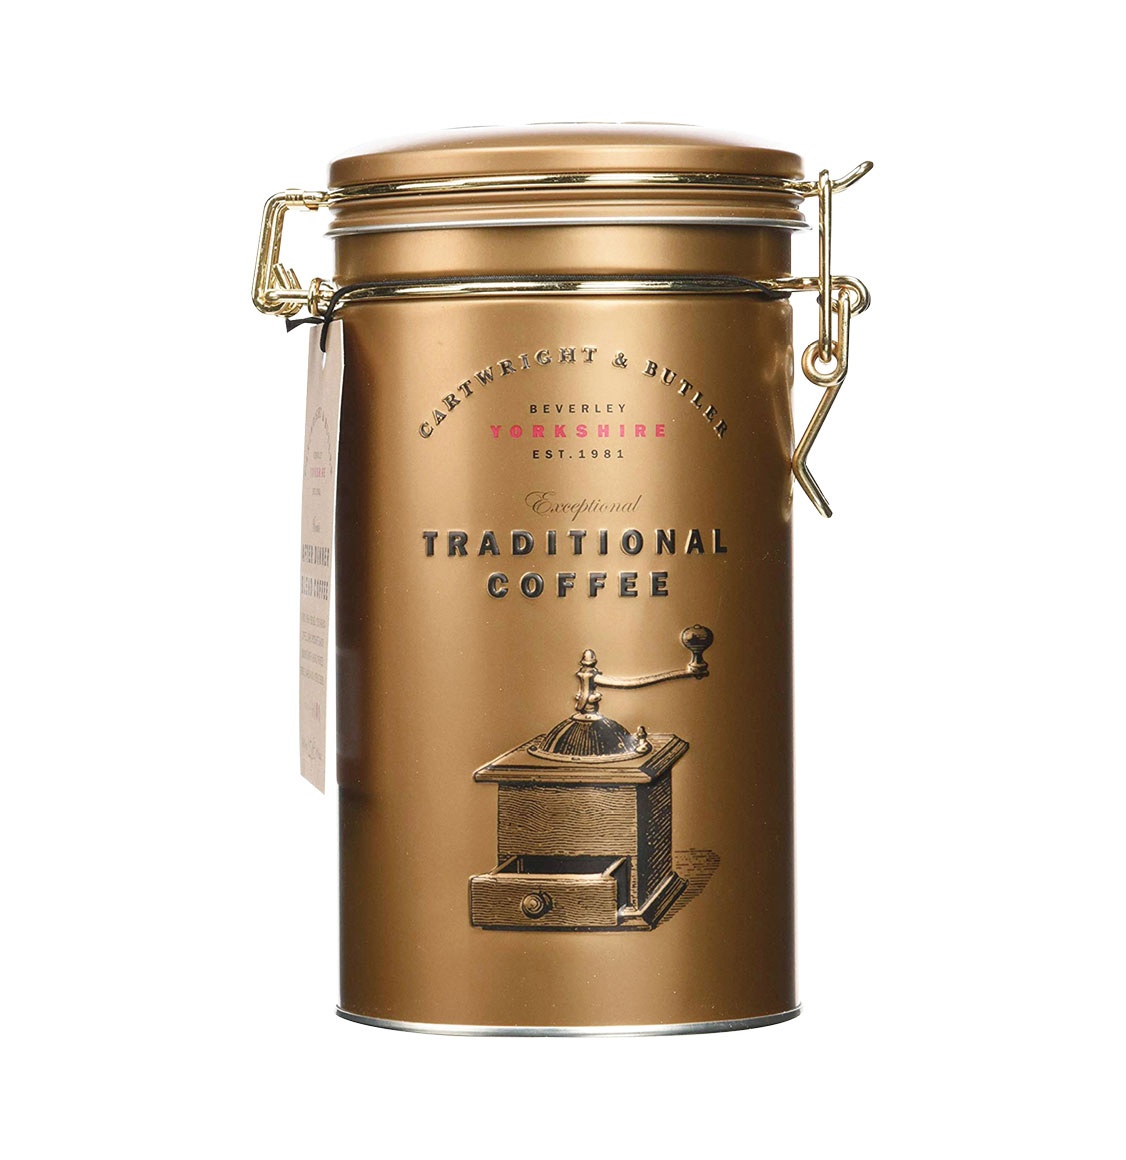 Cartwright_And_Butler_Traditional_Coffee_After_Dinner_Blend_The_Project_Garments_A